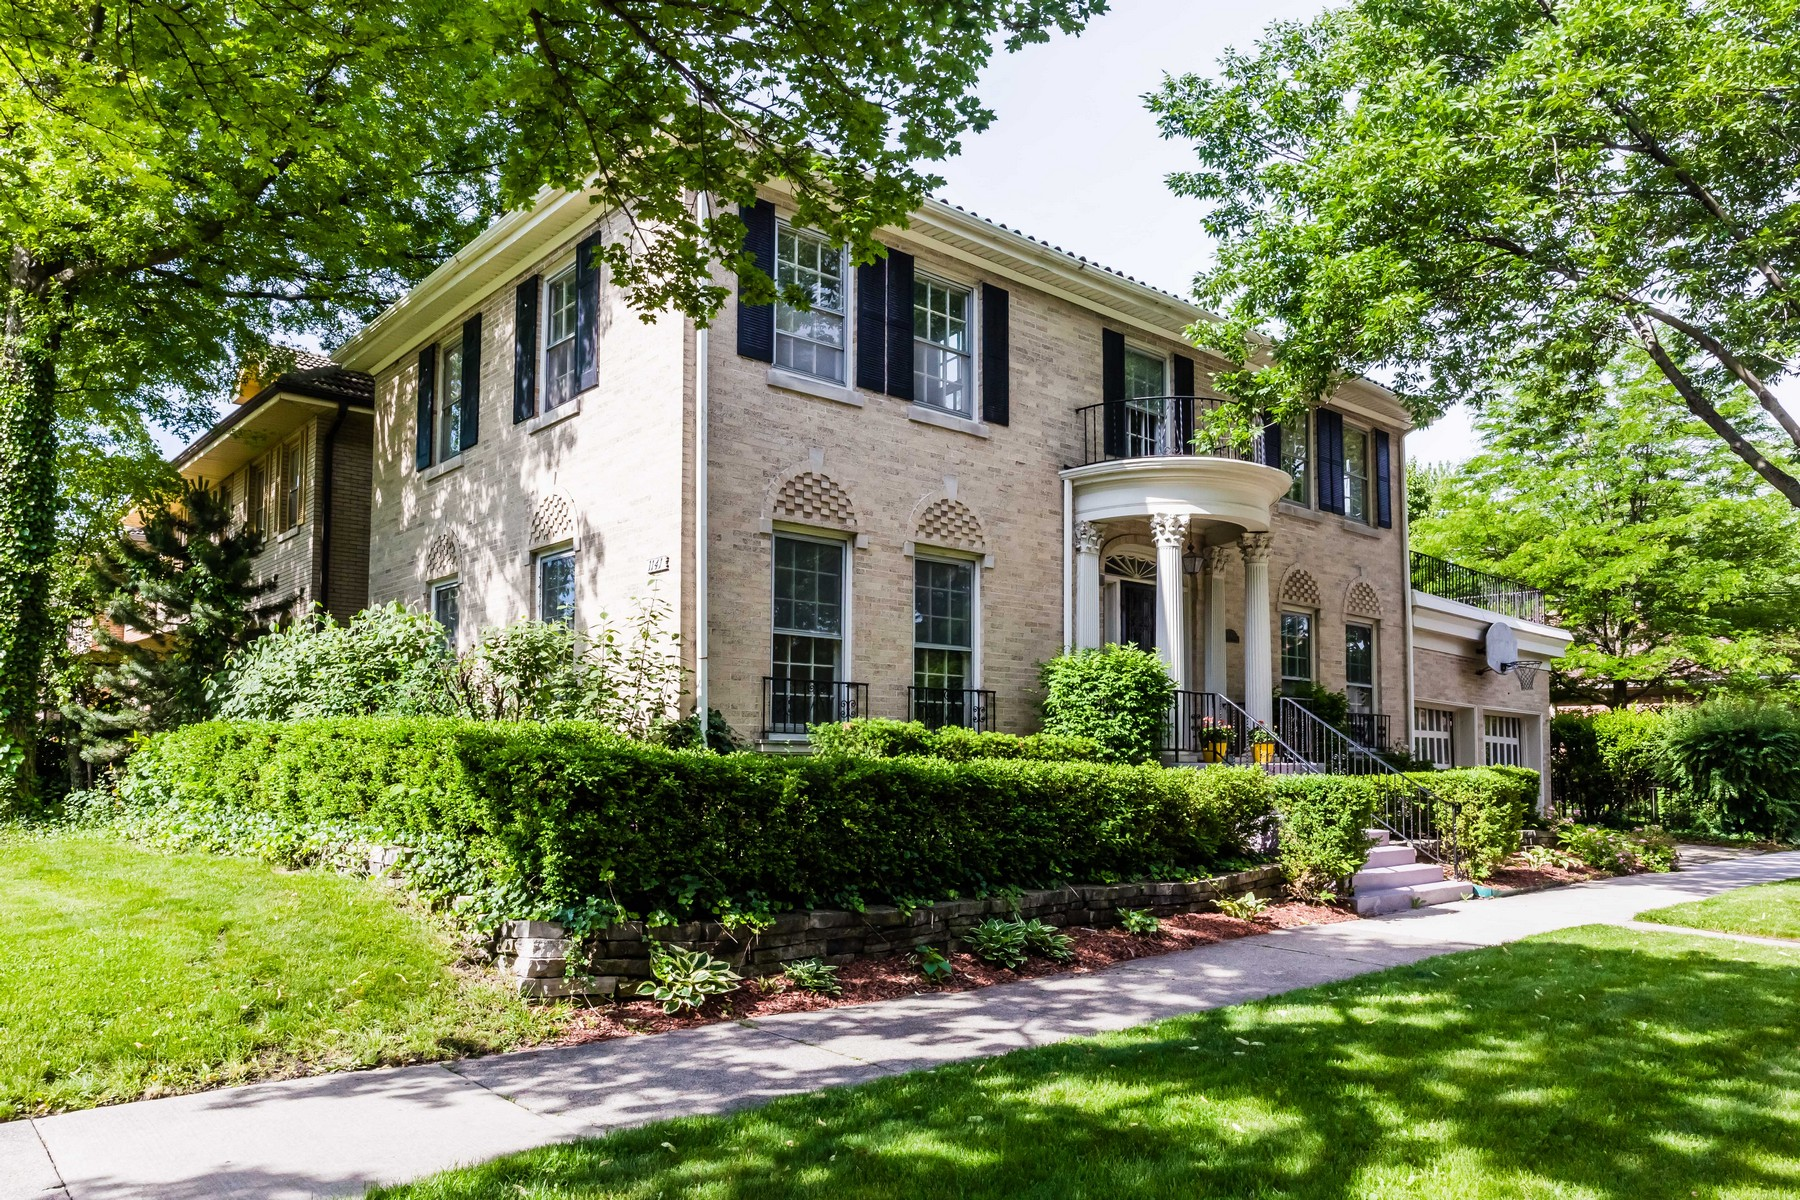 Single Family Home for Active at Elegant Brick Home 1141 N Euclid Avenue Oak Park, Illinois 60302 United States